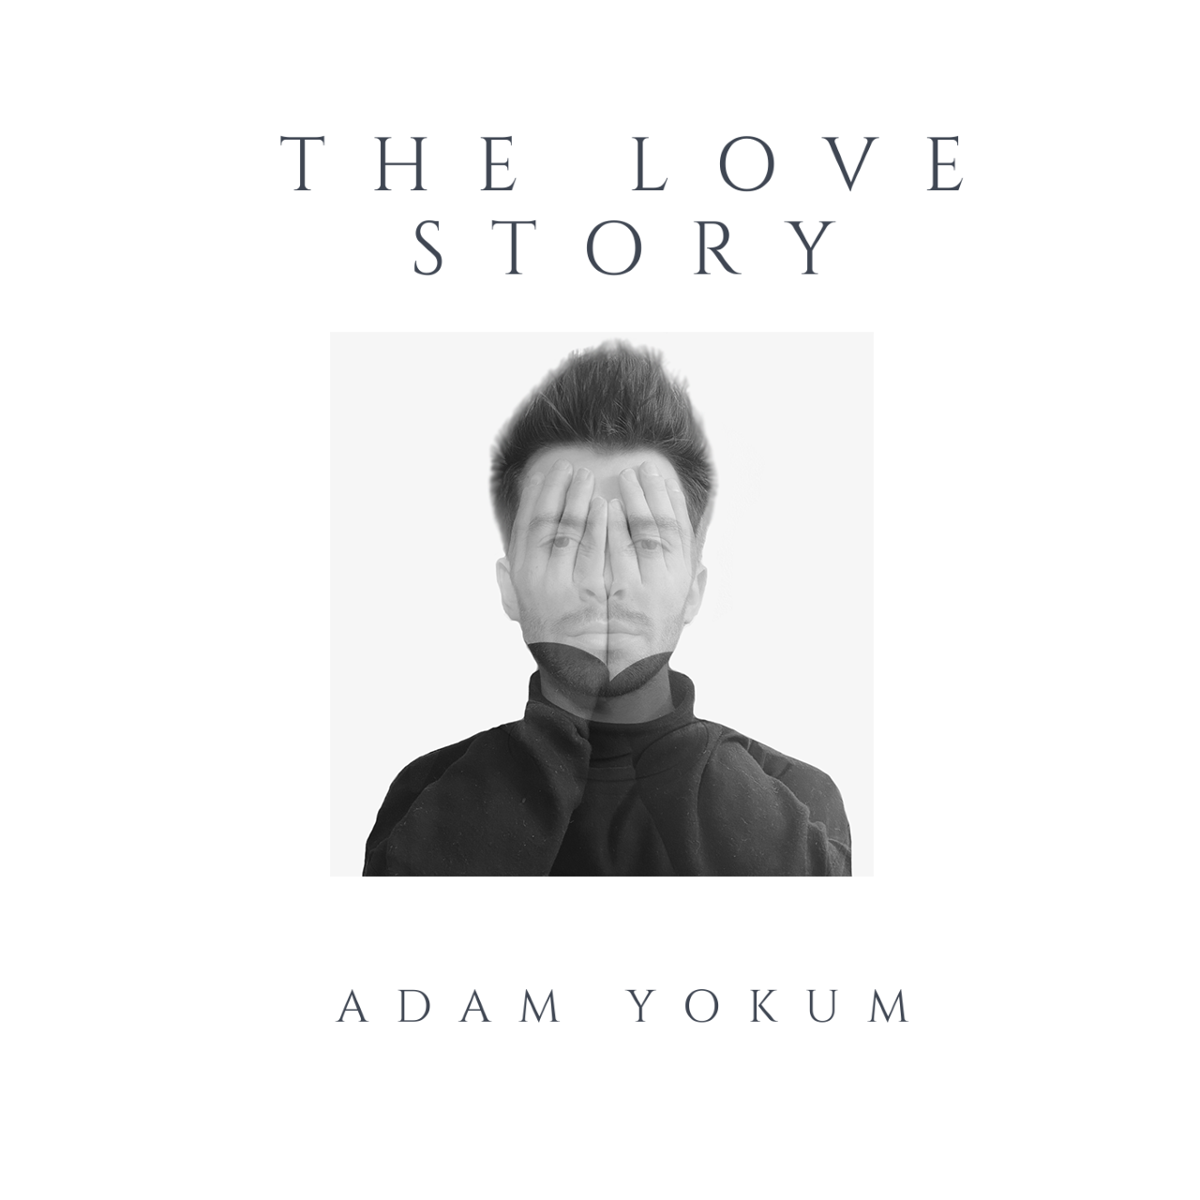 A graphic from Adam Yokum's album 'The Love Story.' The album will be released on Feb. 14, 2021.